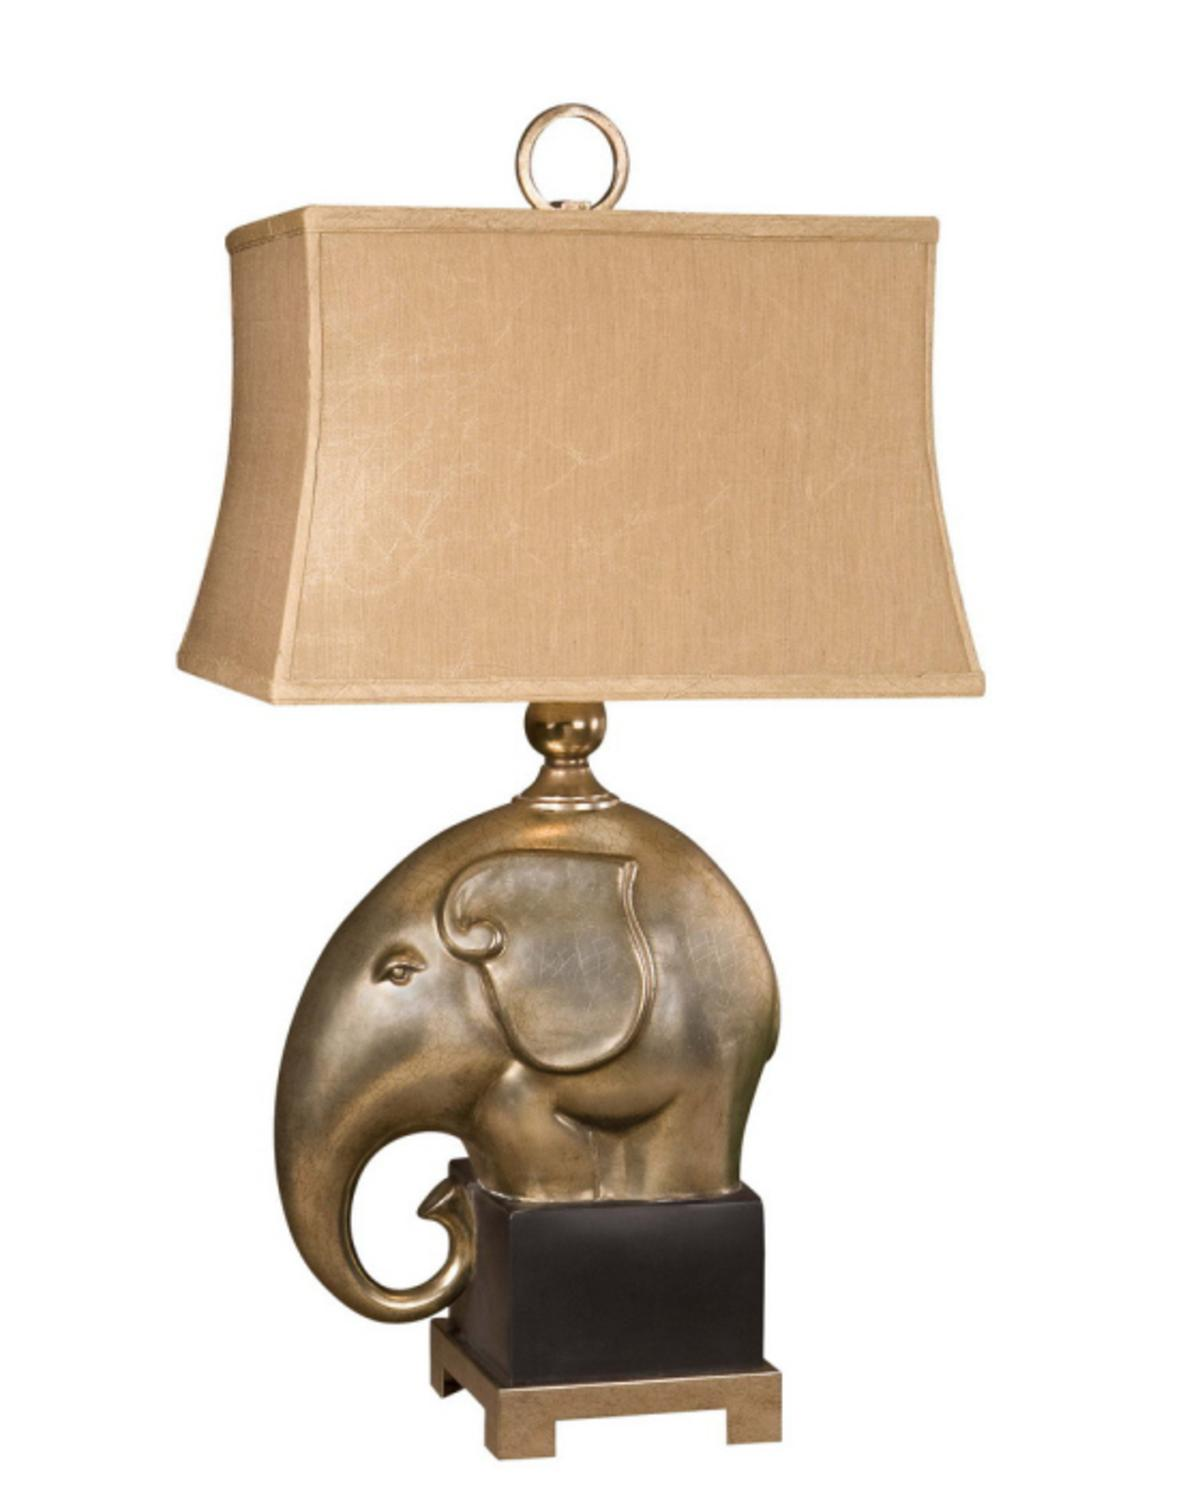 Perfect Elephants On Expedition Sculptural Table Lamp W/Decorative Shade    Walmart.com